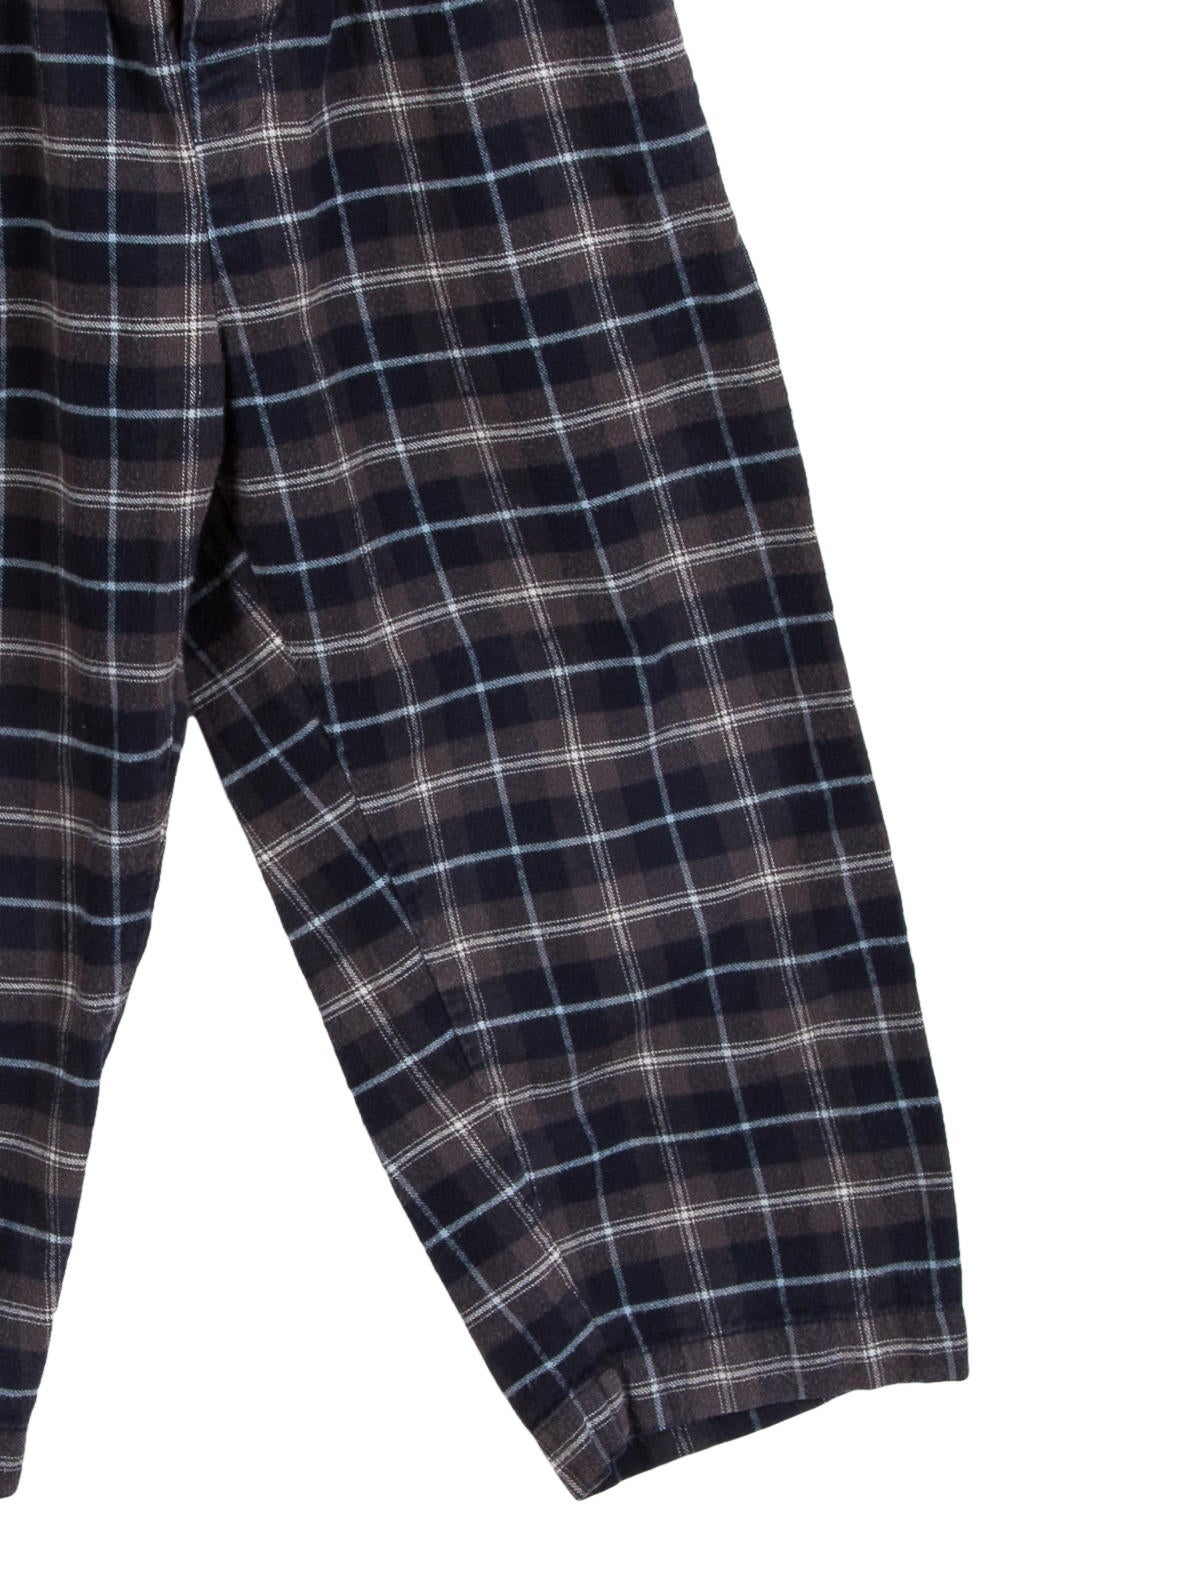 Shop for boys plaid pants online at Target. Free shipping on purchases over $35 and save 5% every day with your Target REDcard.